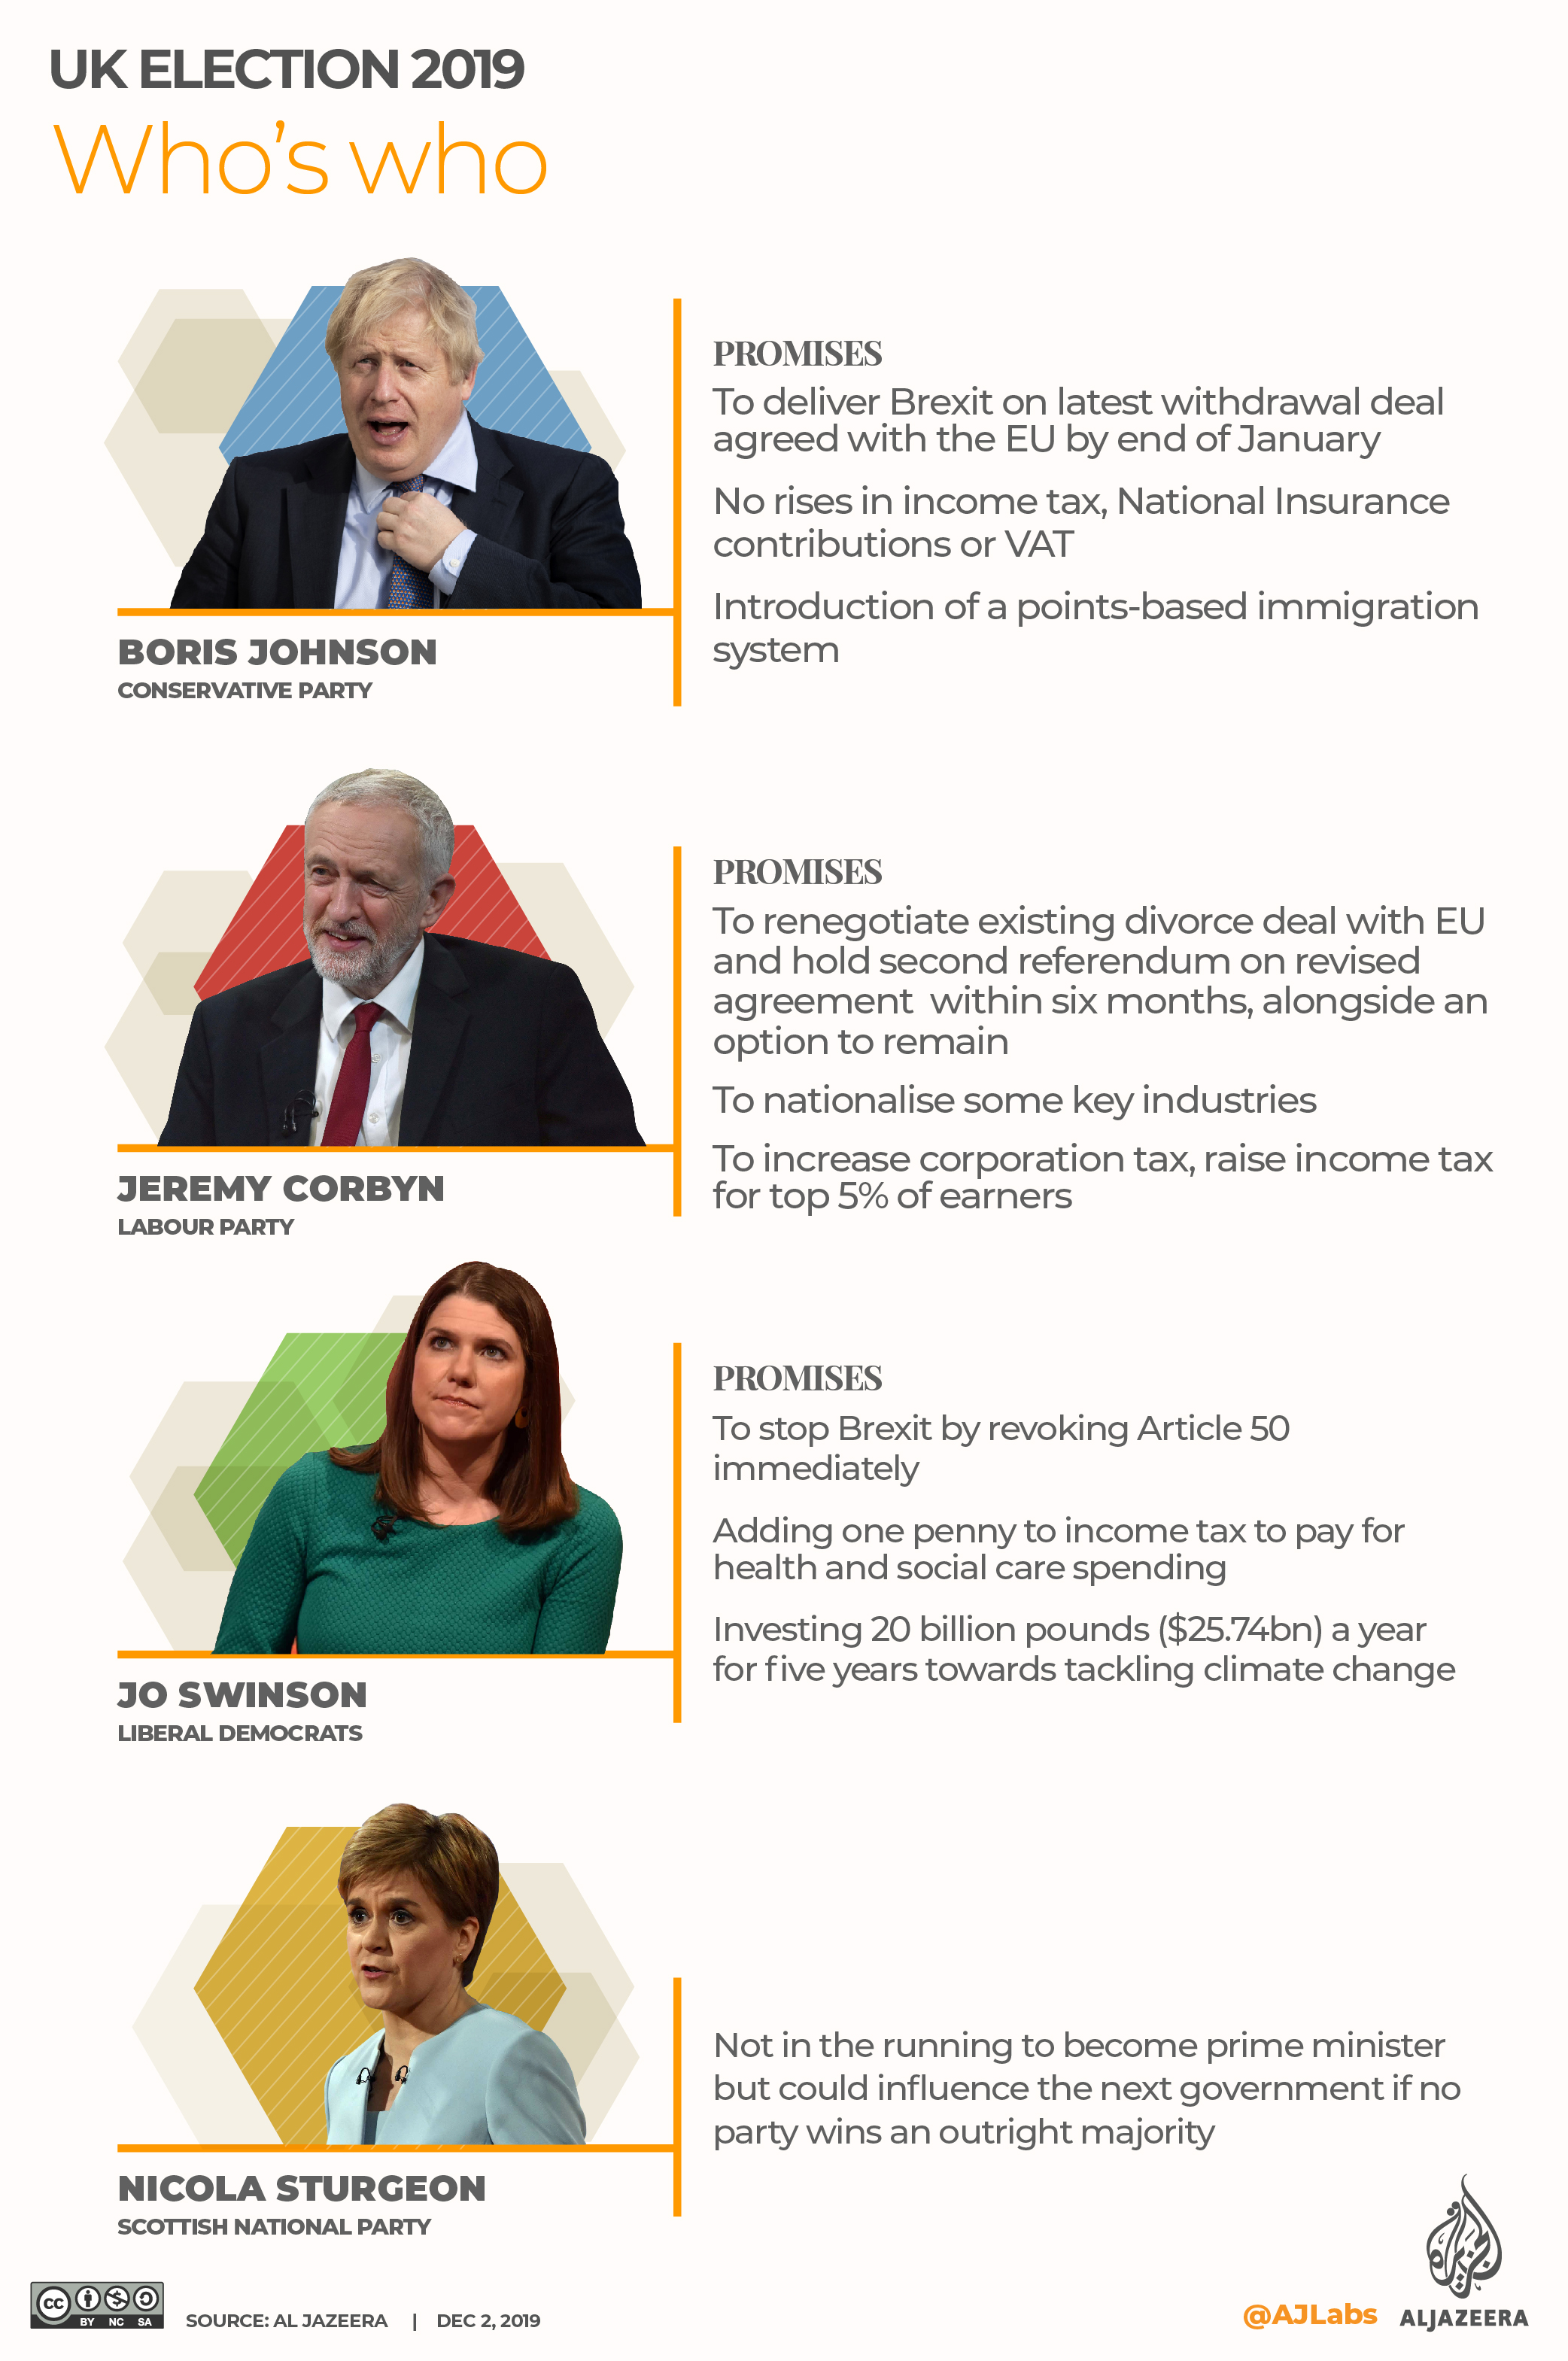 INTERACTIVE: UK election 2019 - Who's Who